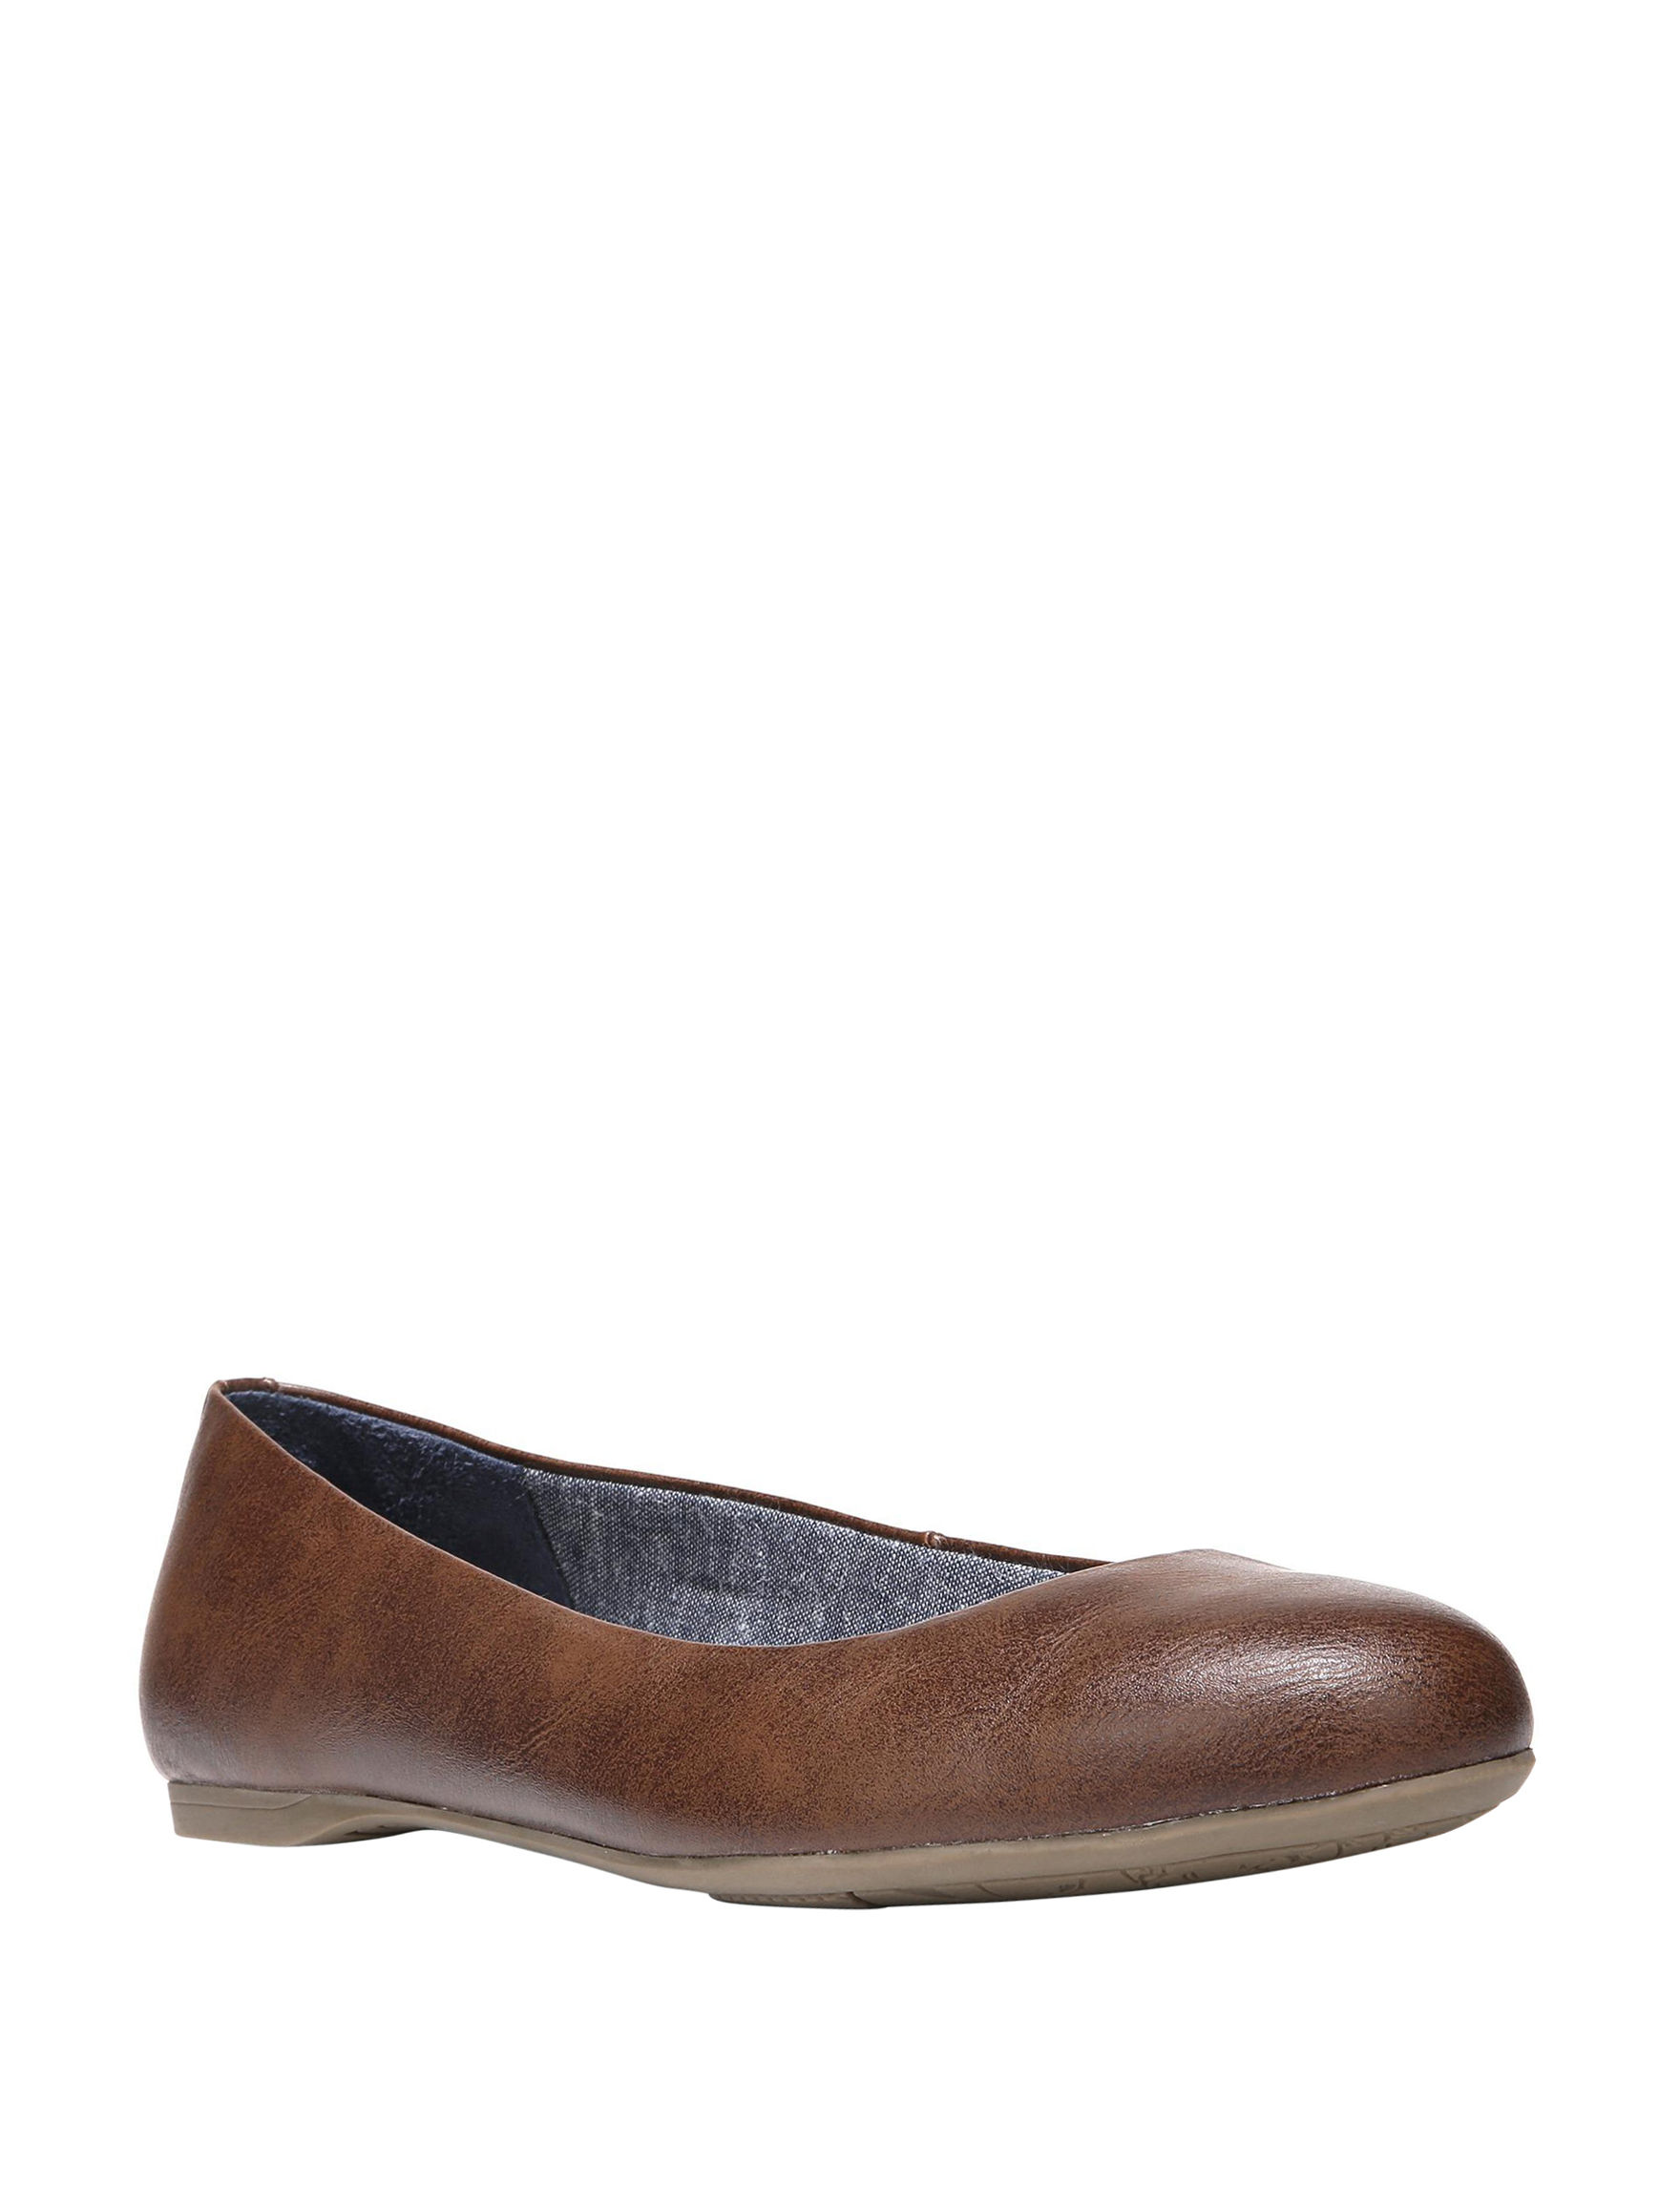 Dr. Scholl's Medium Brown